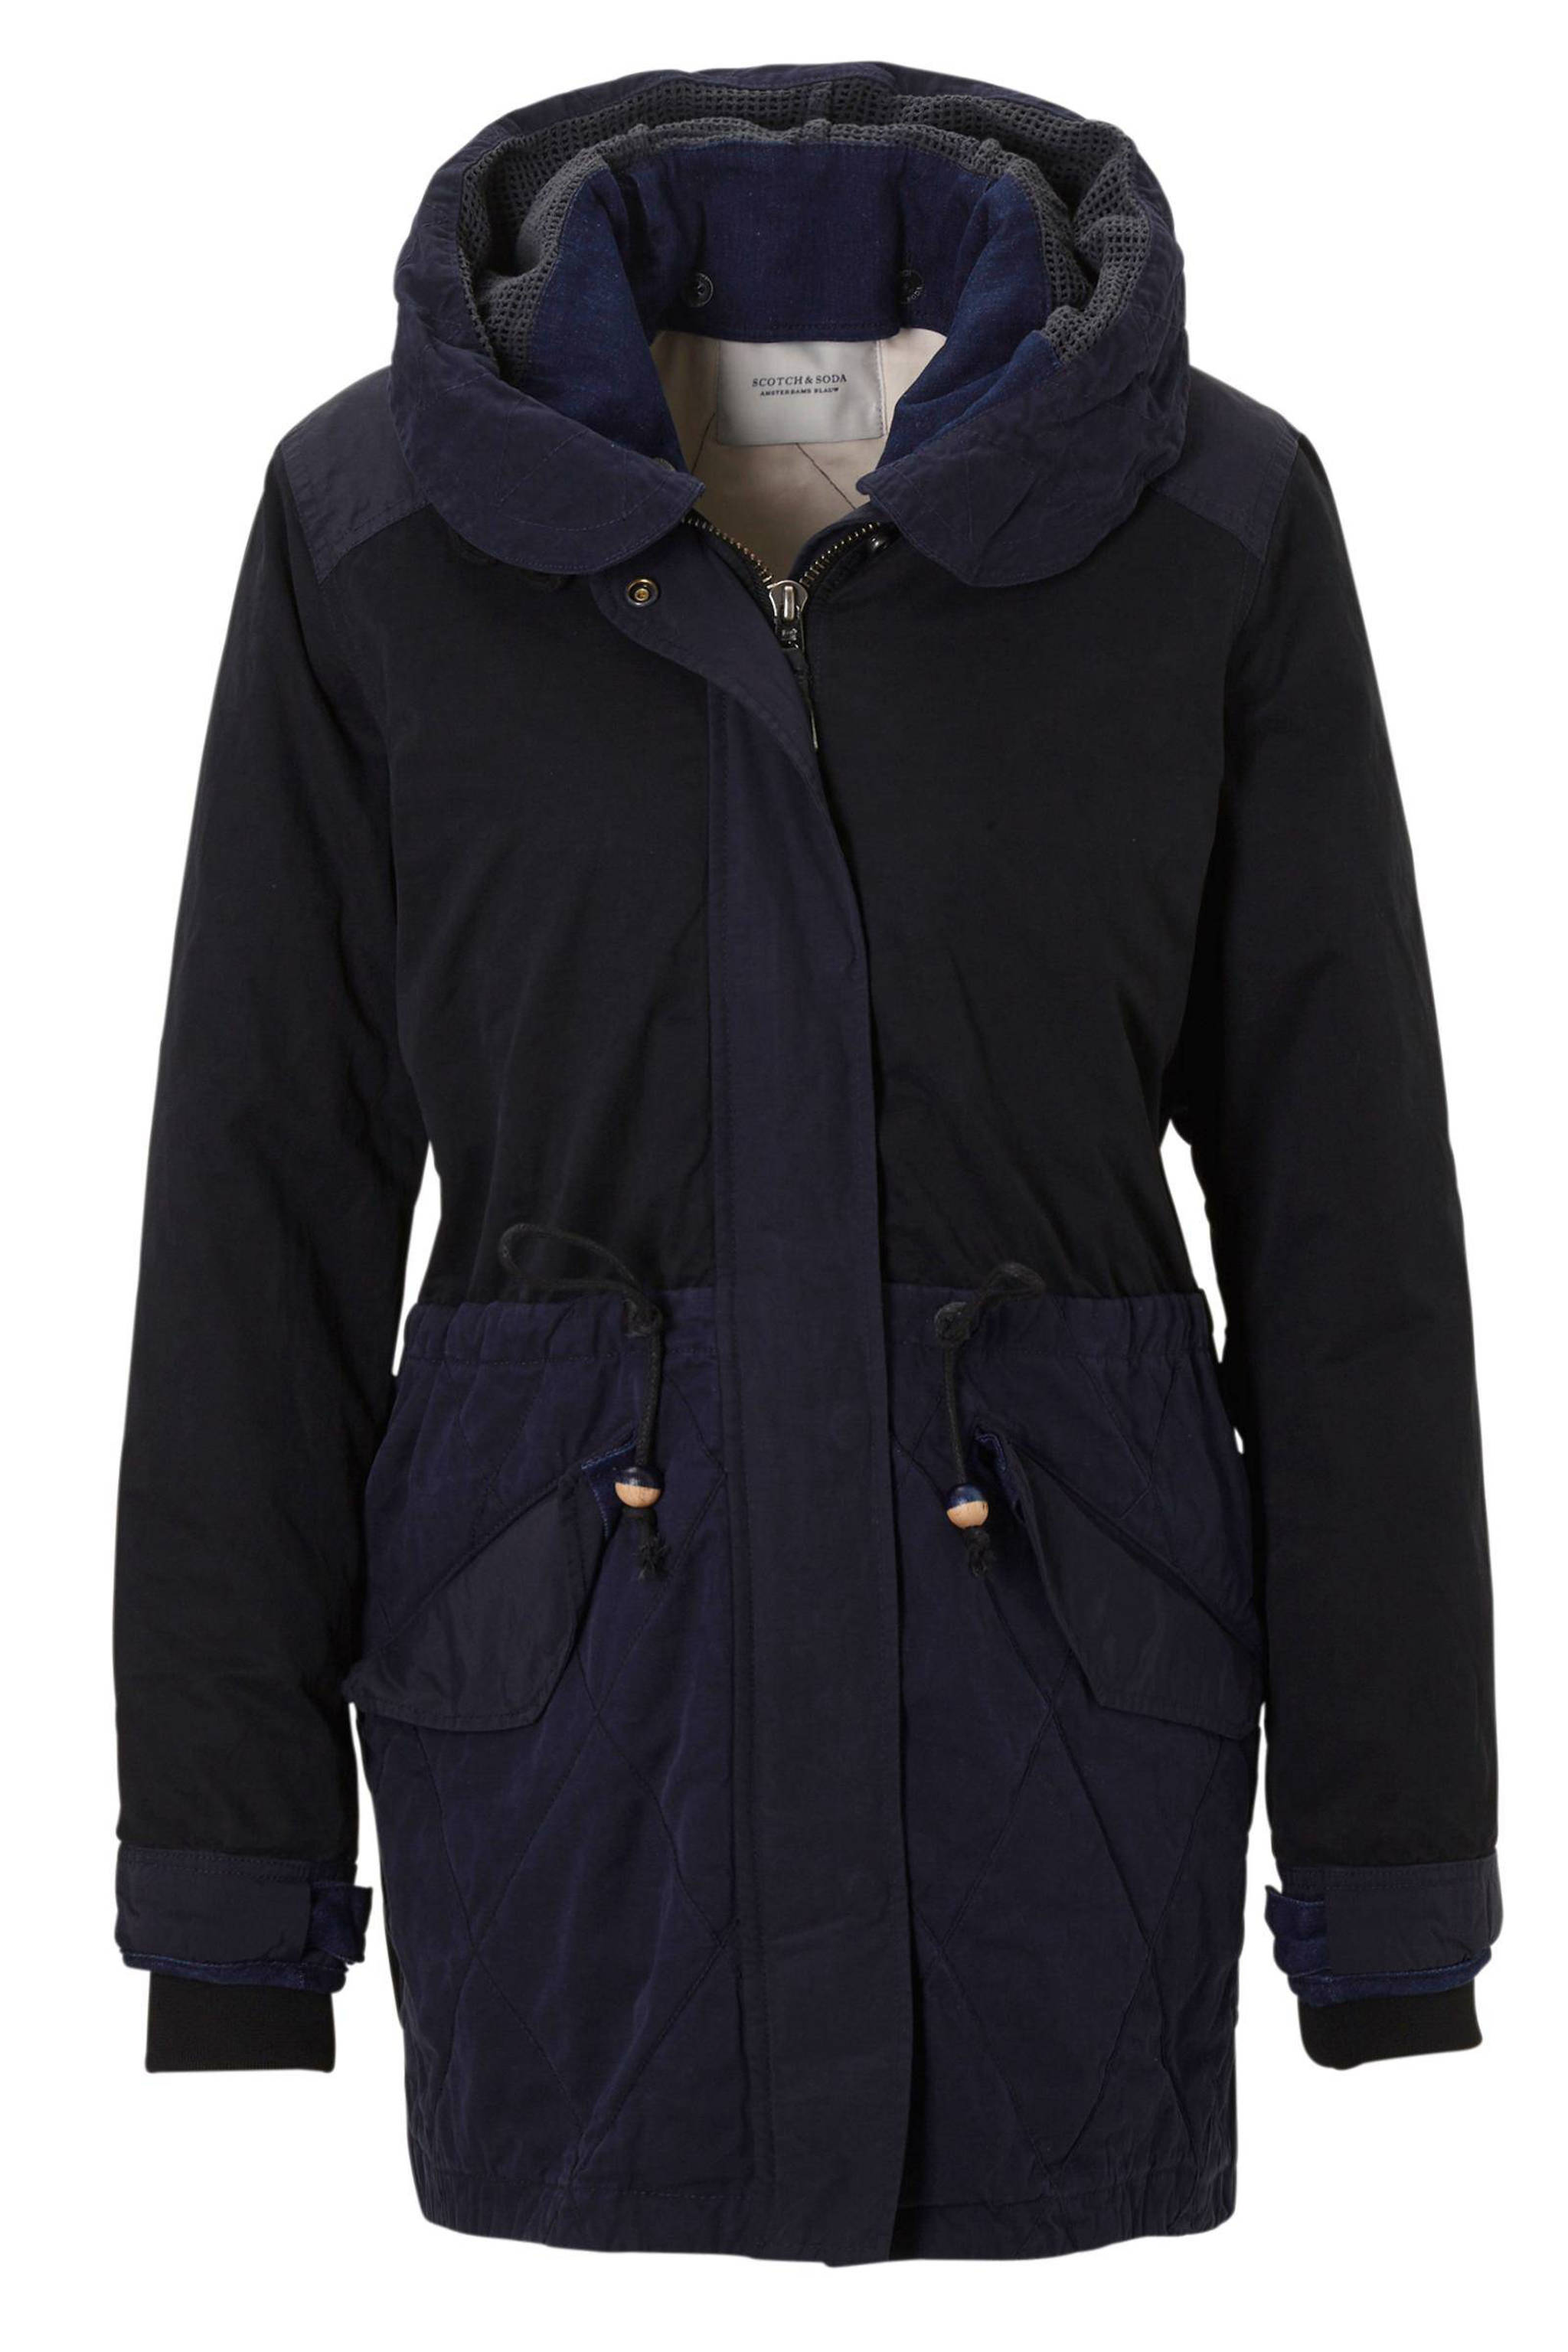 Parka Winterjas Dames.Scotch Soda Maison Scotch Parka Jas Wehkamp